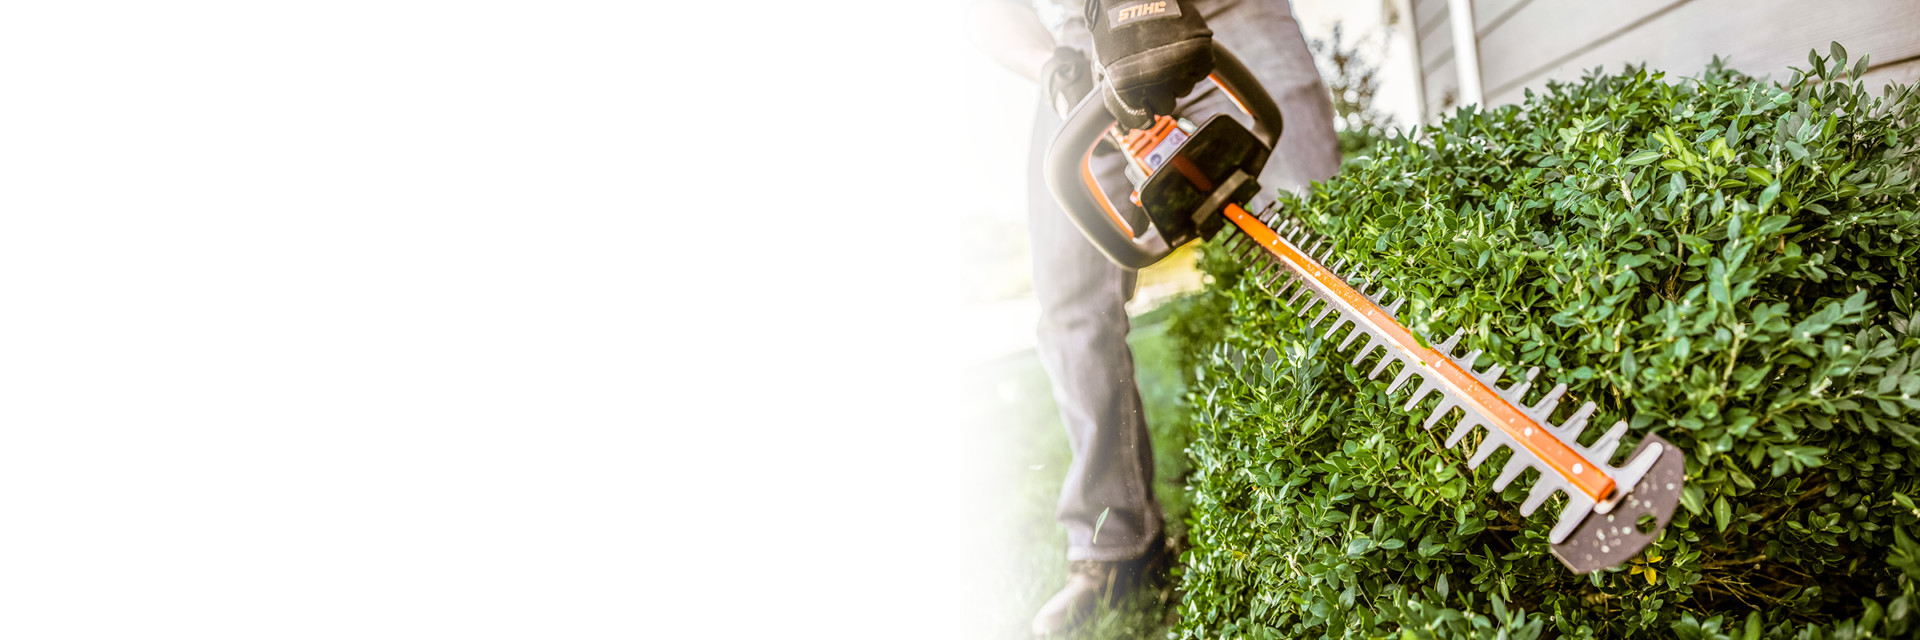 Action image of a STIHL hedge trimmer being used.